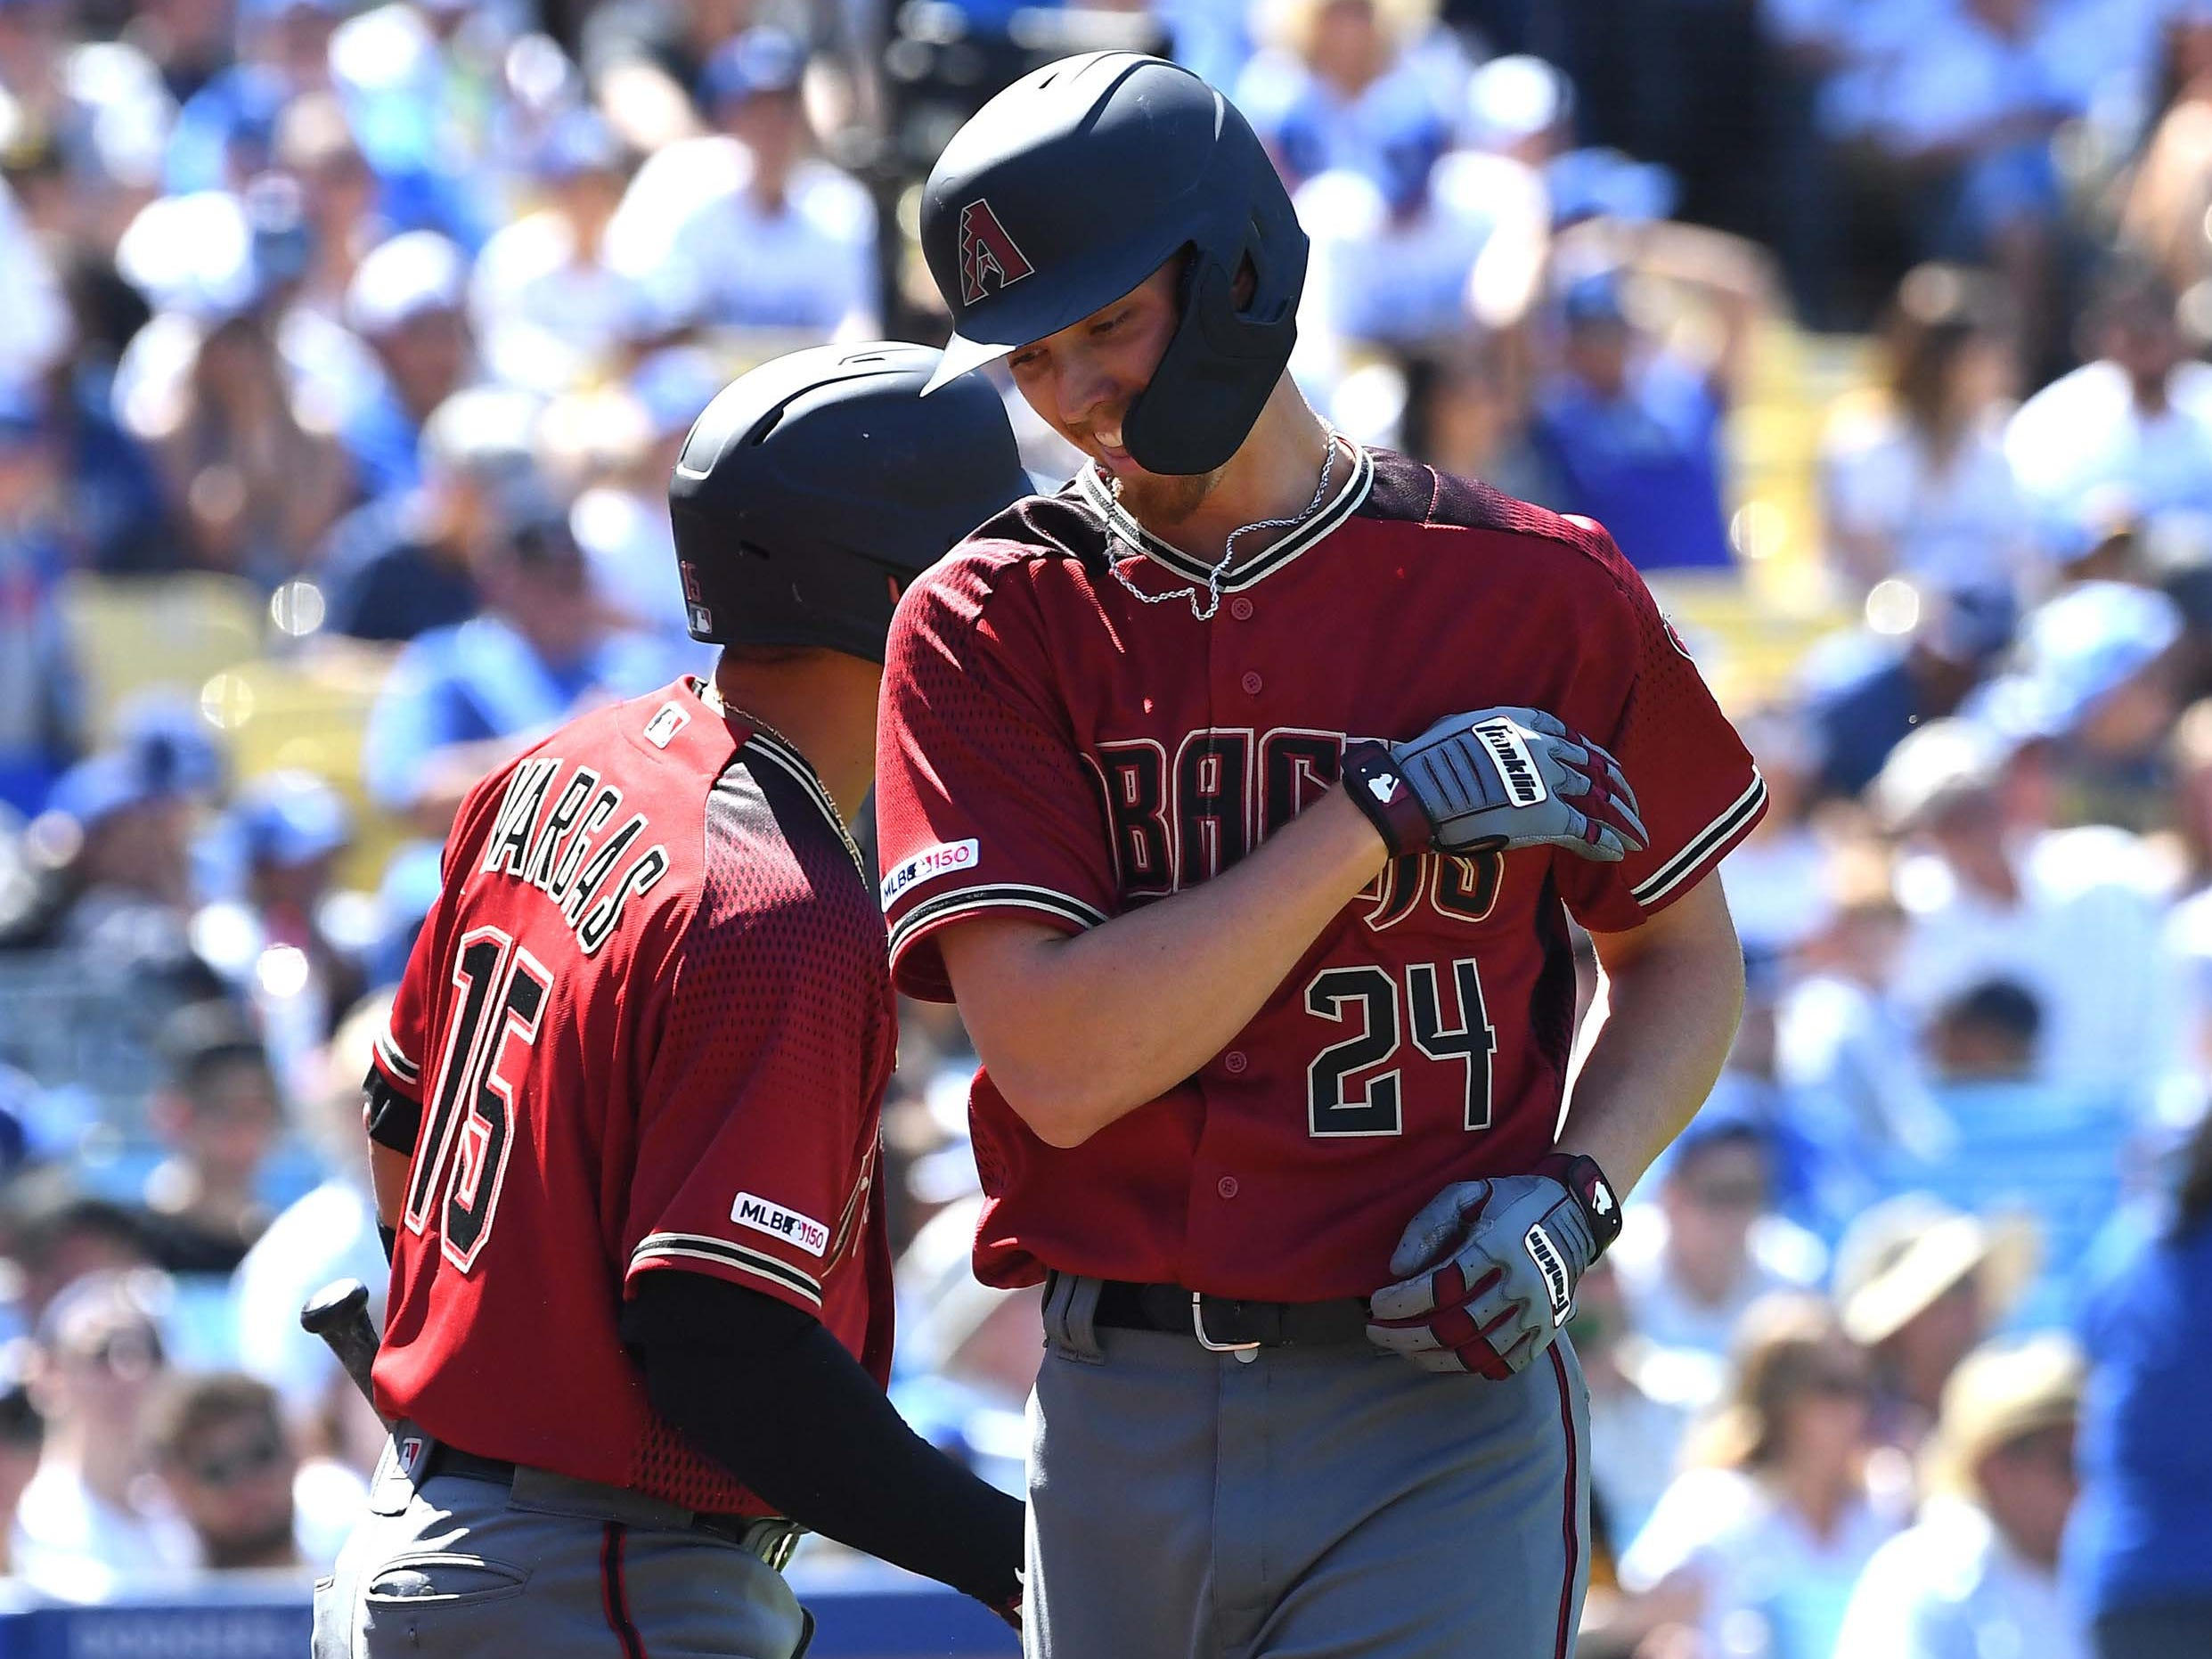 Mar 31, 2019; Los Angeles, CA, USA; Arizona Diamondbacks starting pitcher Luke Weaver (24) is greeted by Arizona Diamondbacks second baseman Ildemaro Vargas (15) after he crosses the plate after hitting a solo home run in the fourth inning of the game at Dodger Stadium.